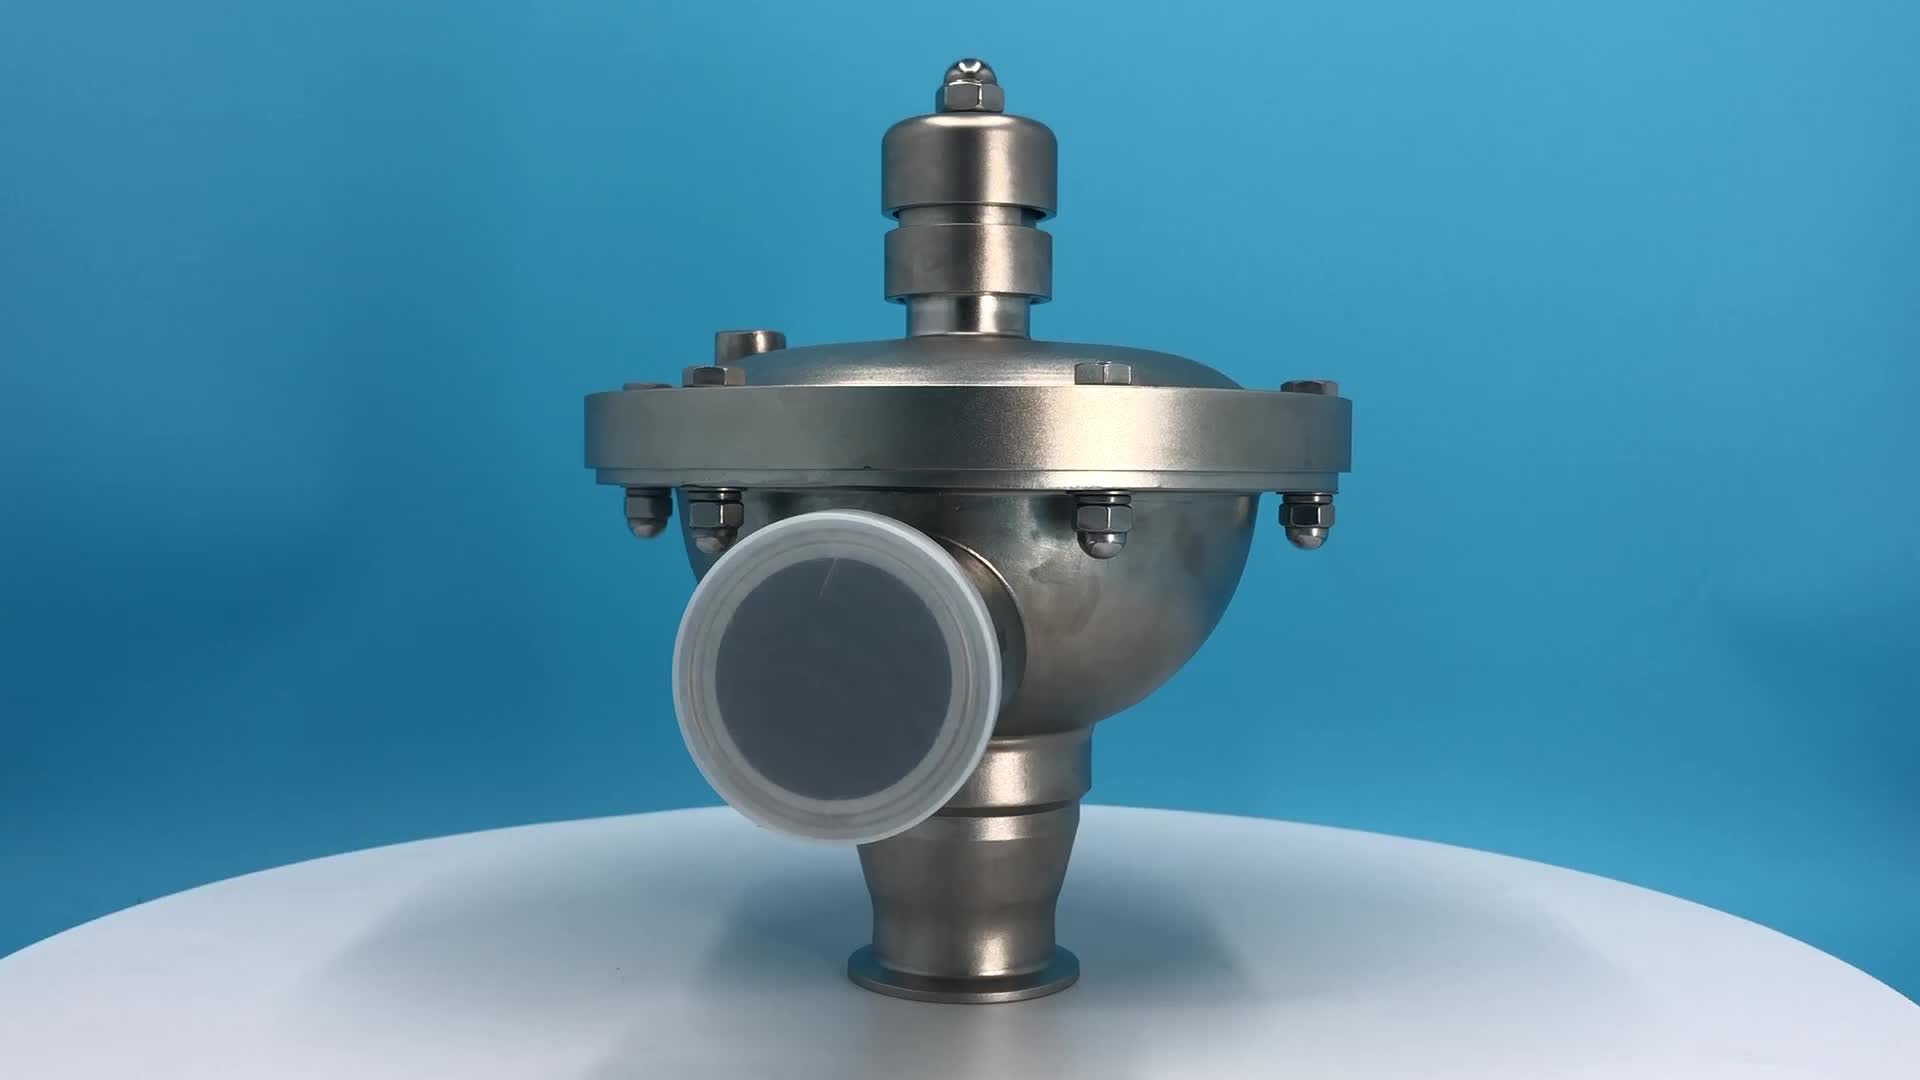 Donjoy stainless steel  price of pressure control valve air compressor pressure relief safety constant pressure valve